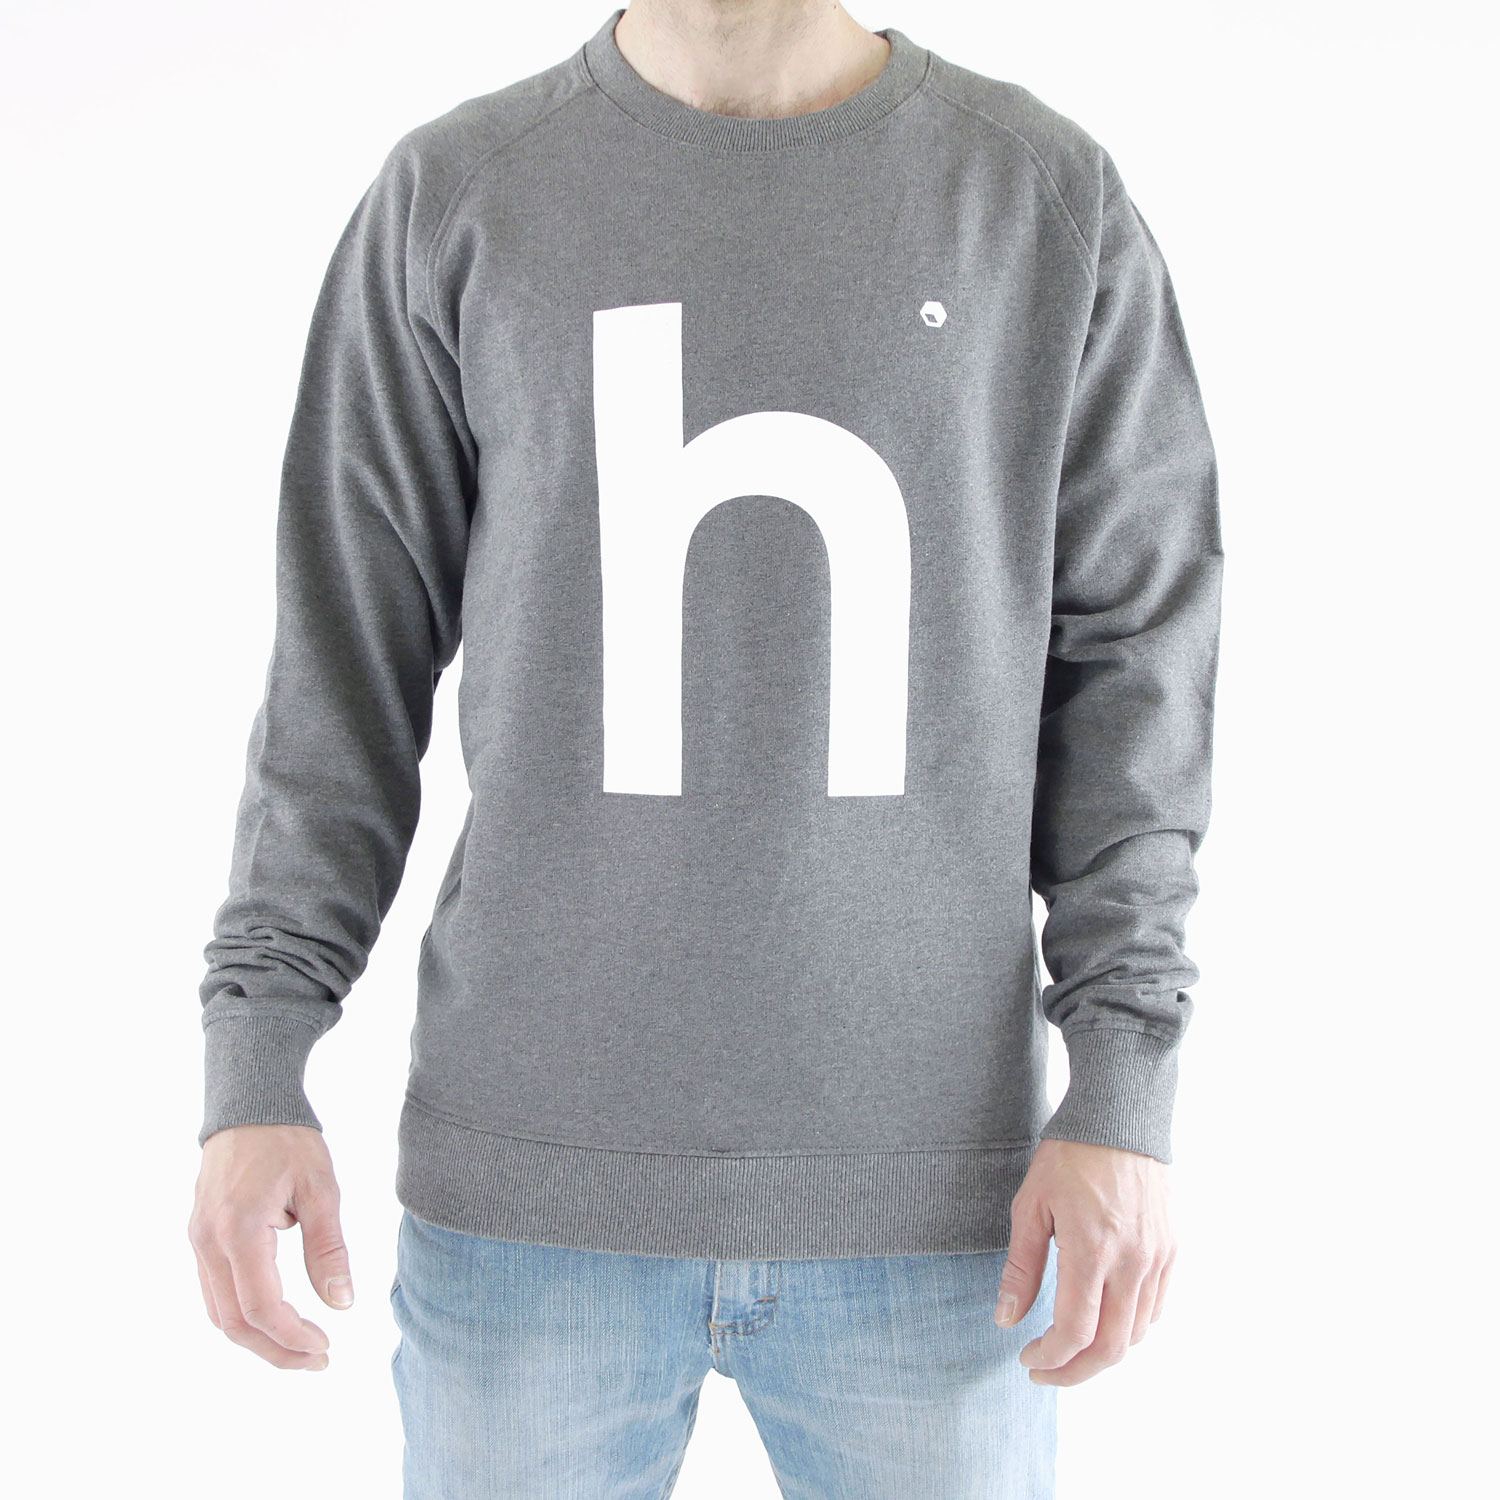 Flathold-apparel-sweat-h-grey